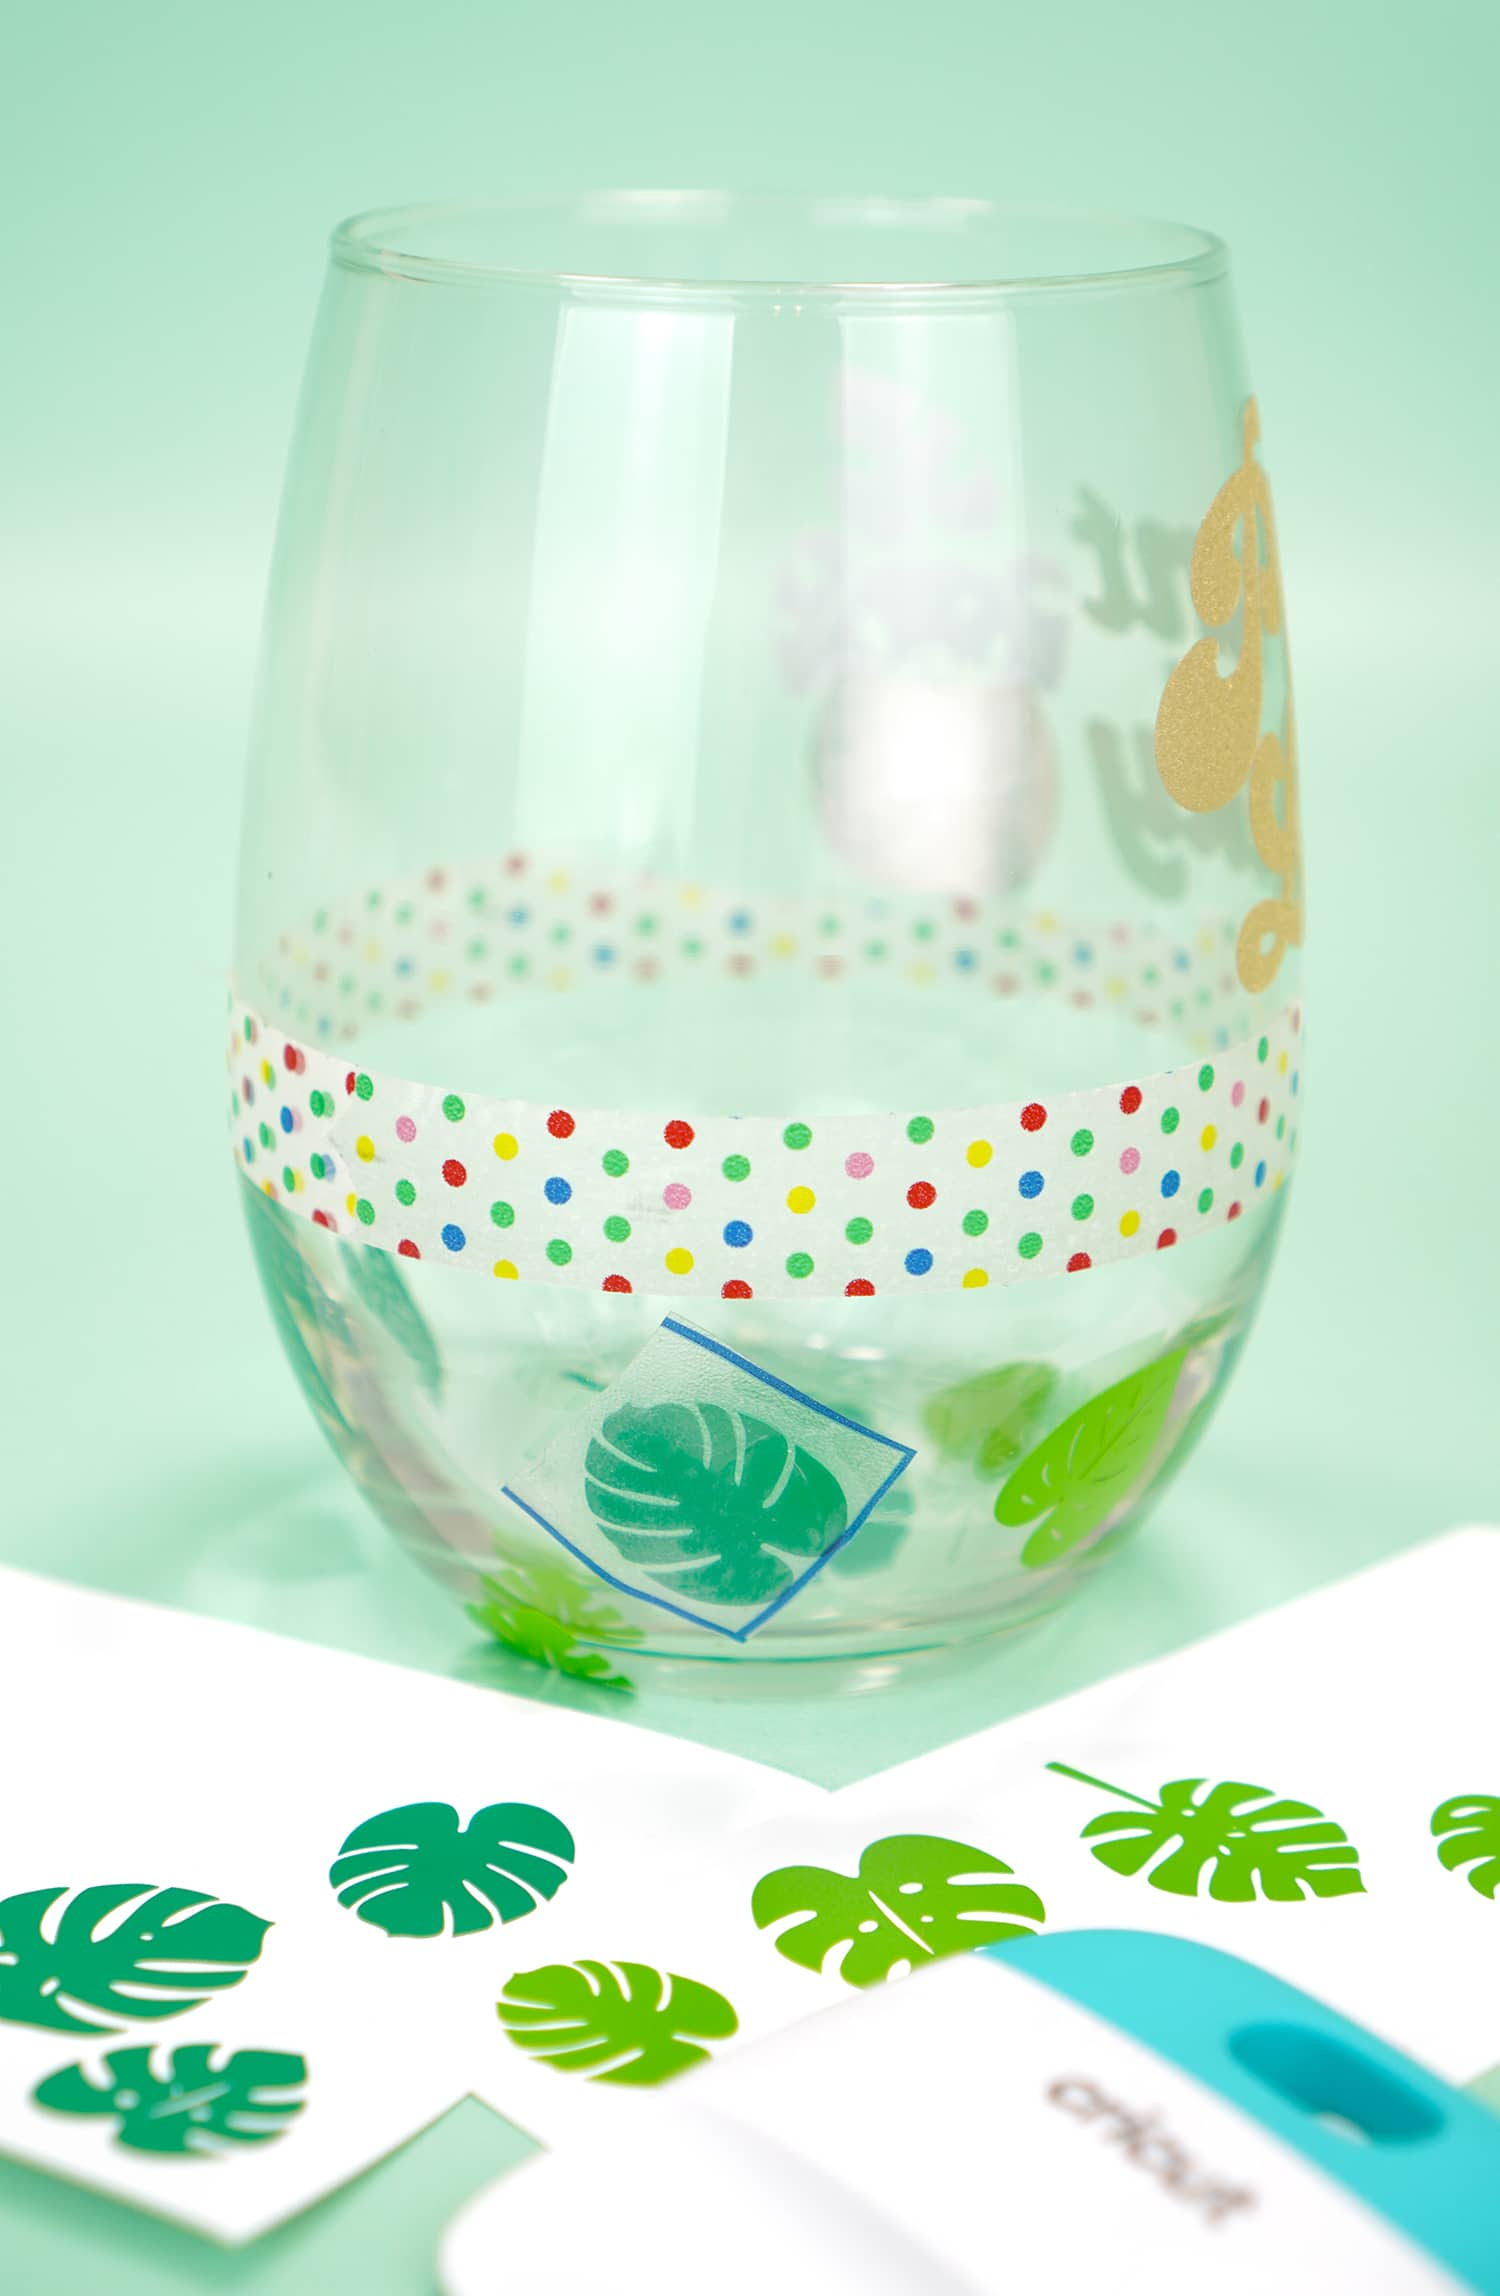 Clear stemless wine glass with band of washi tape and green vinyl leaf decals applied to bottom half of glass